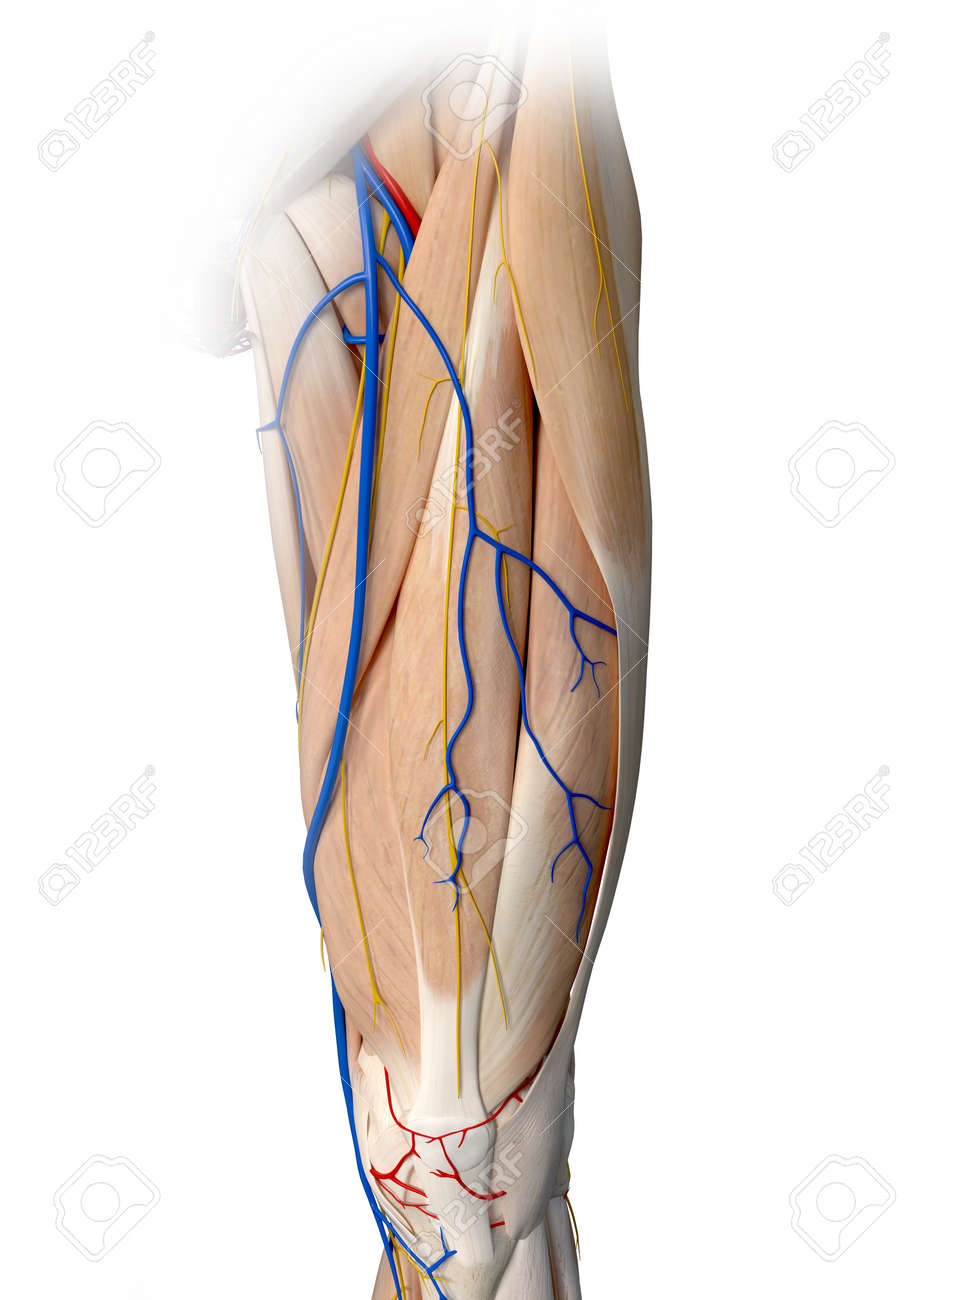 3d Rendered Medically Accurate Illustration Of The Leg Anatomy Stock